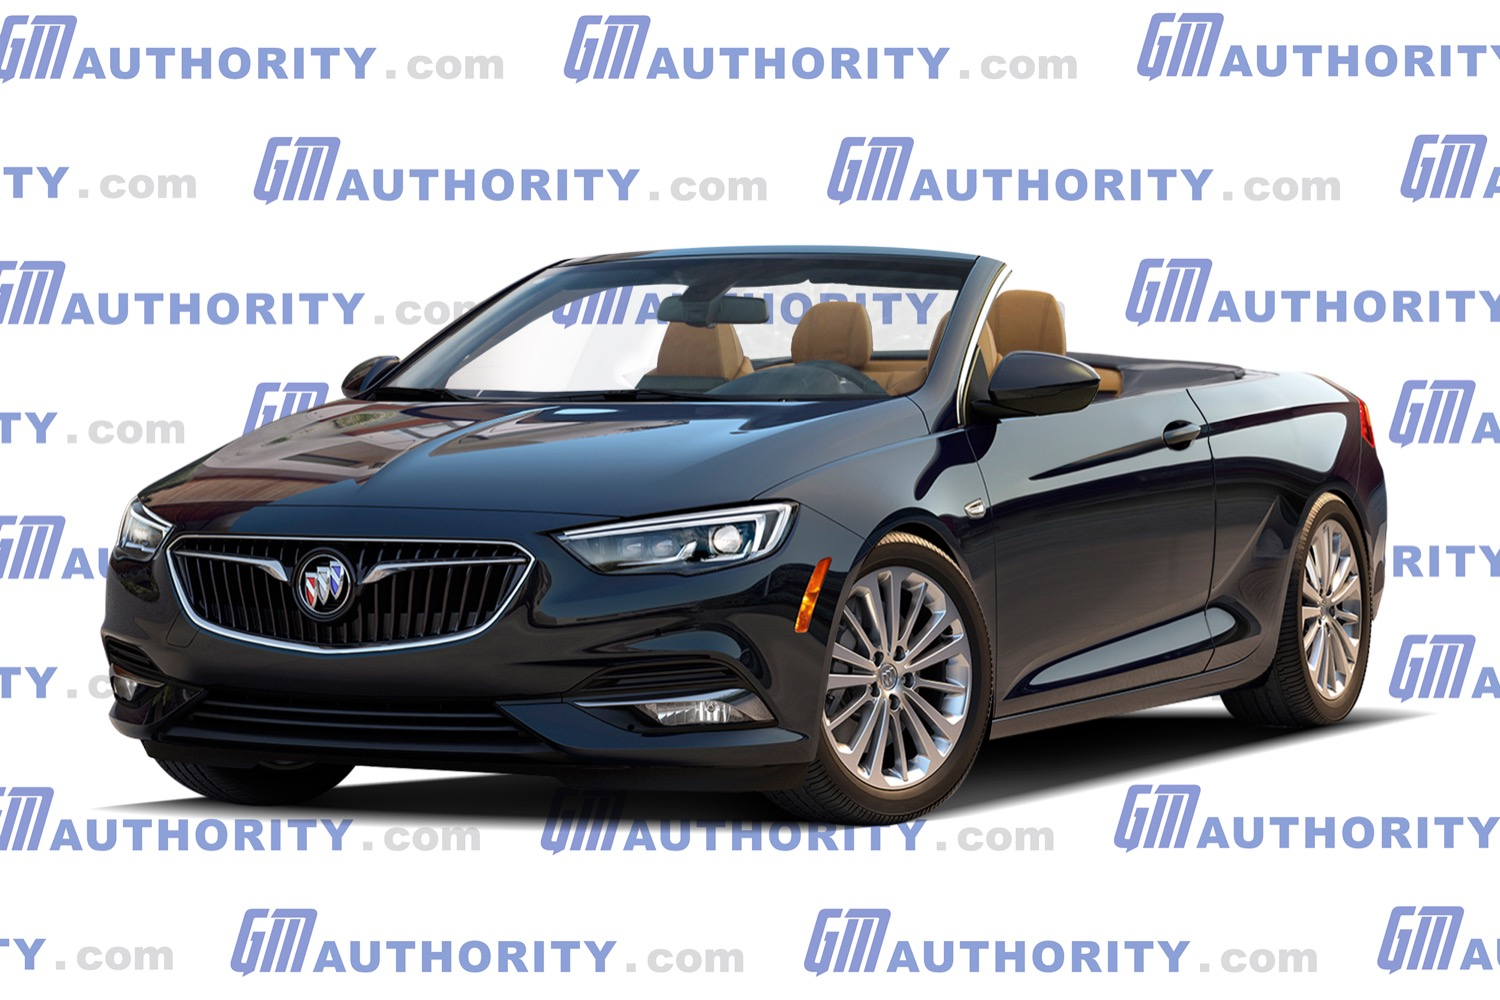 Buick Regal Convertible Rendered | Gm Authority 2022 Buick Regal Images, Price, Performance